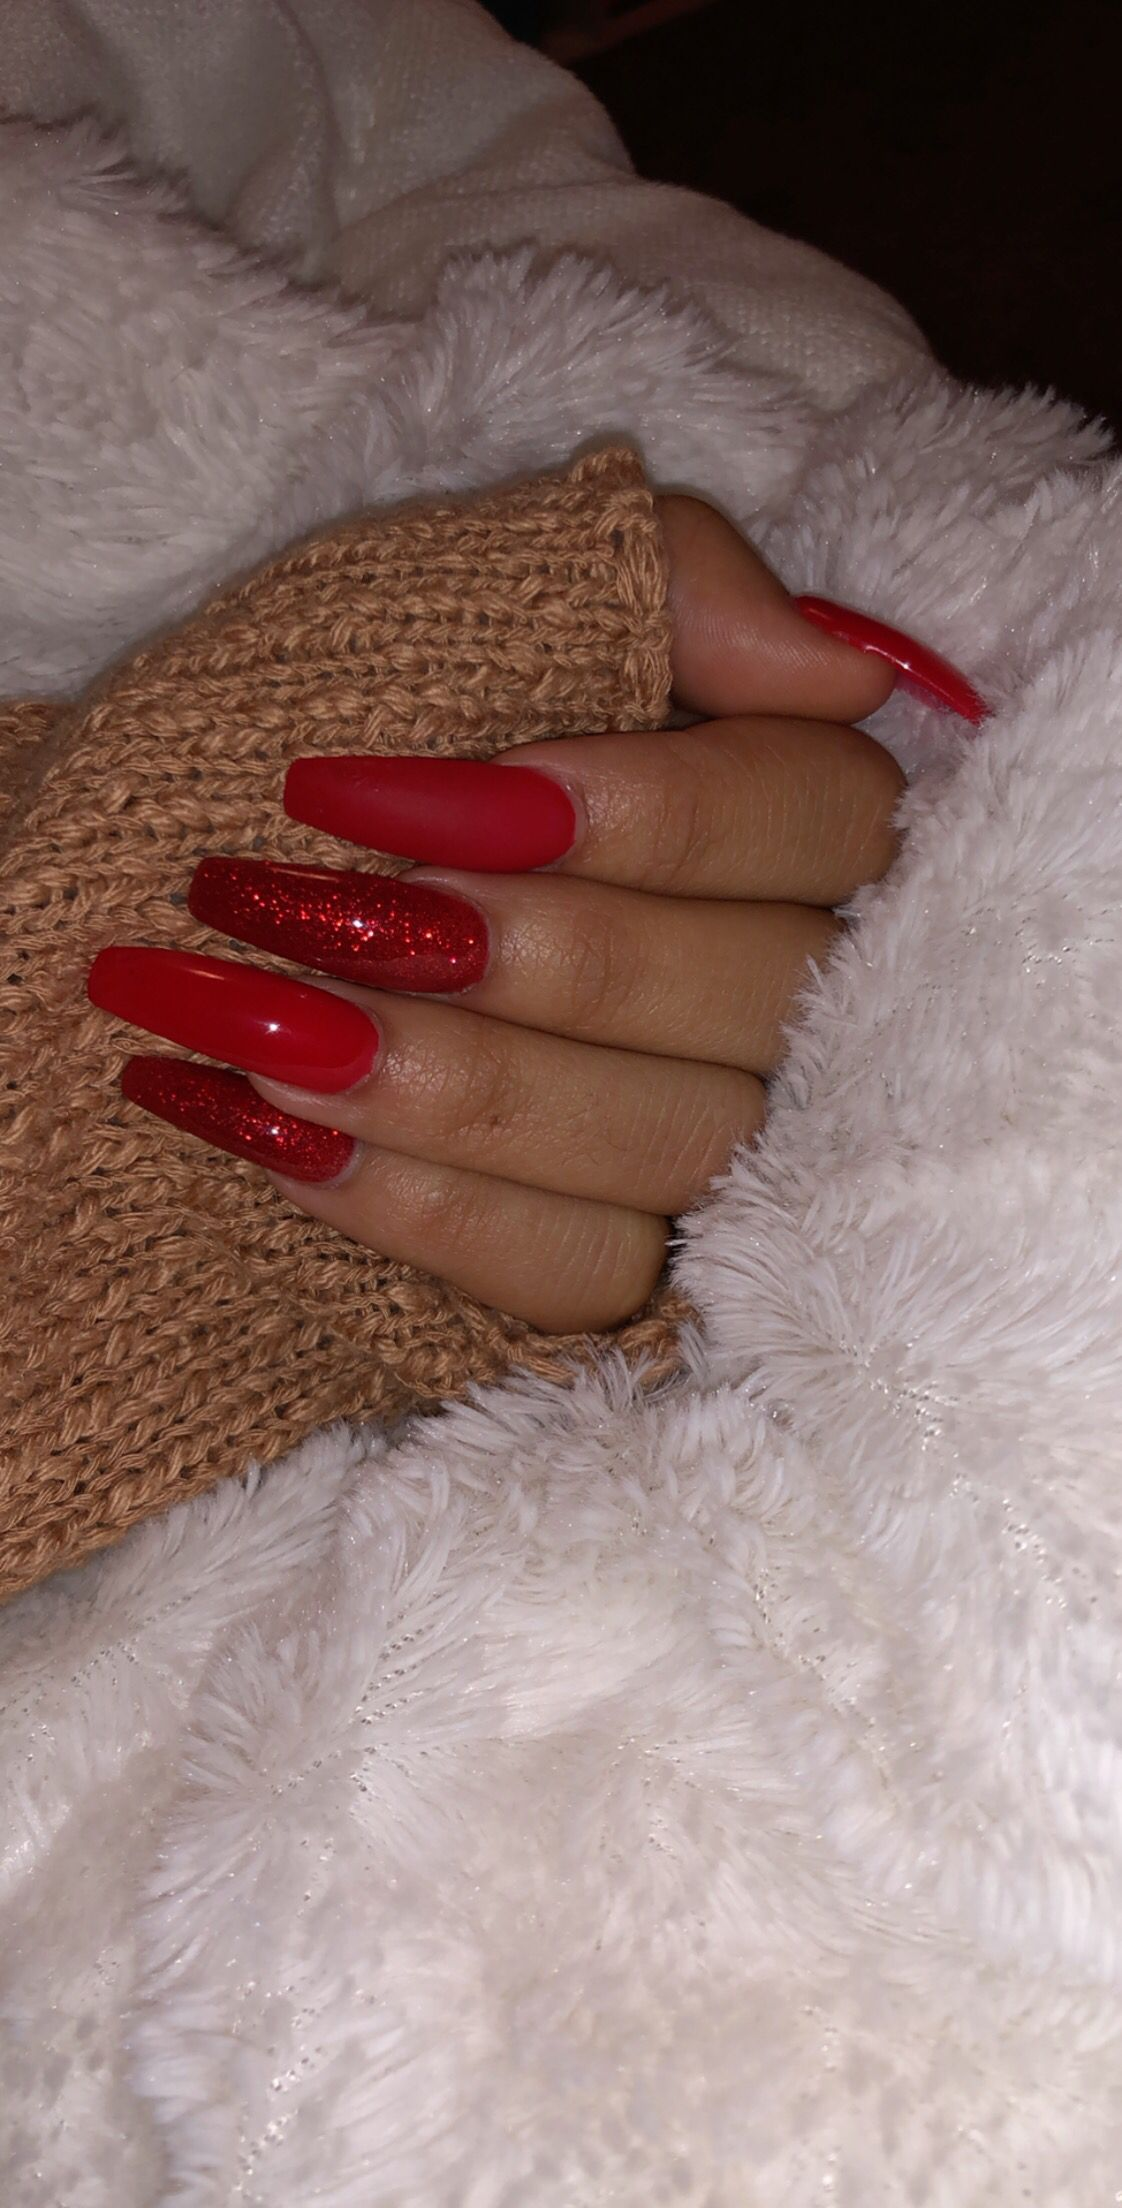 Red Coffin Nails In 2020 Red Nails Glitter Red Acrylic Nails Coffin Nails Designs